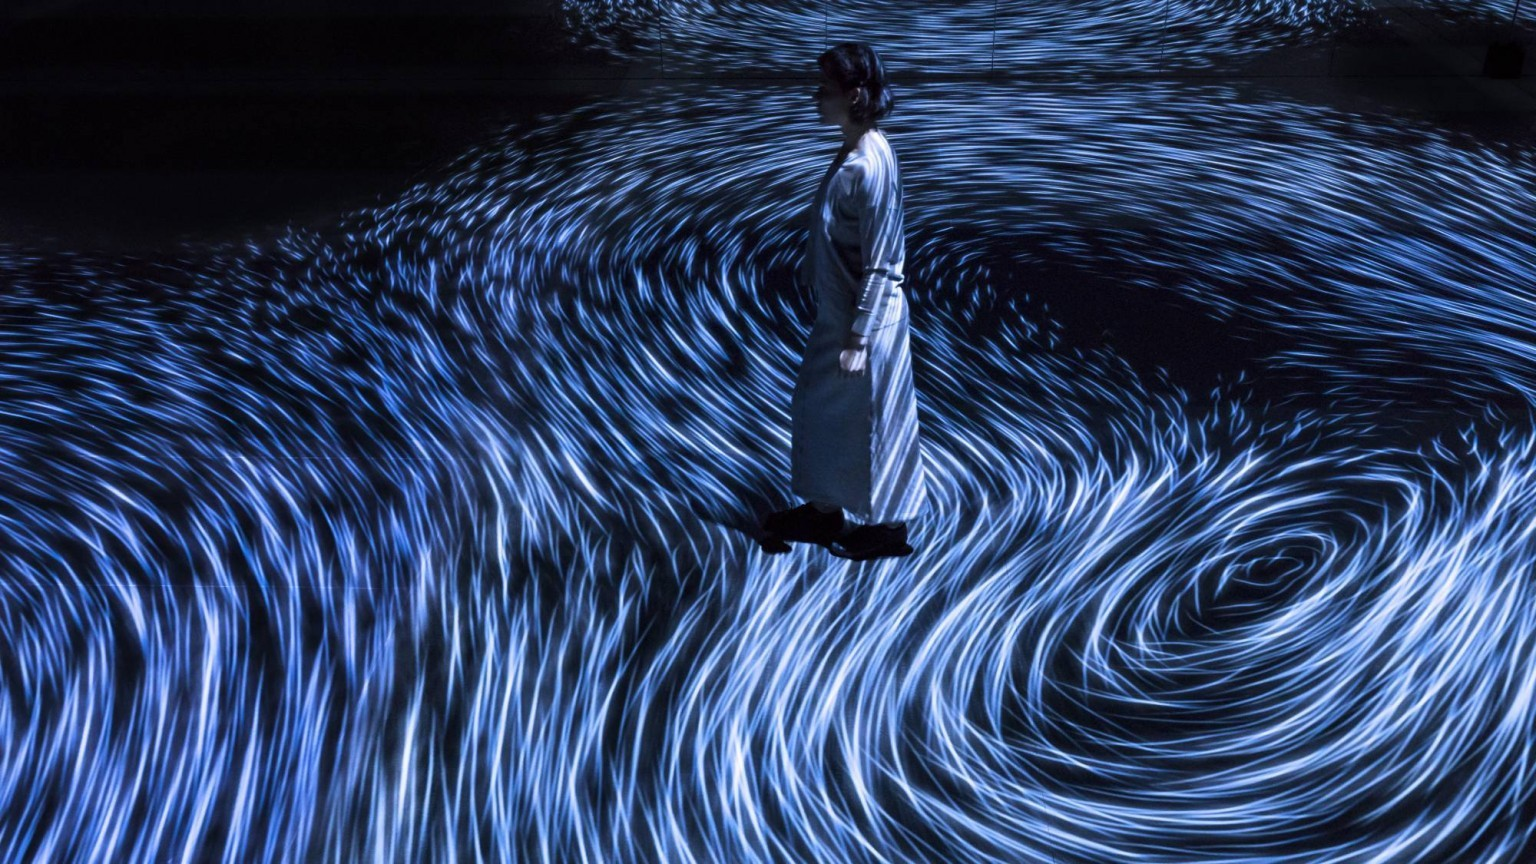 Step Inside a Swirling Mirror Room of Interactive Ocean Vortices by teamLab